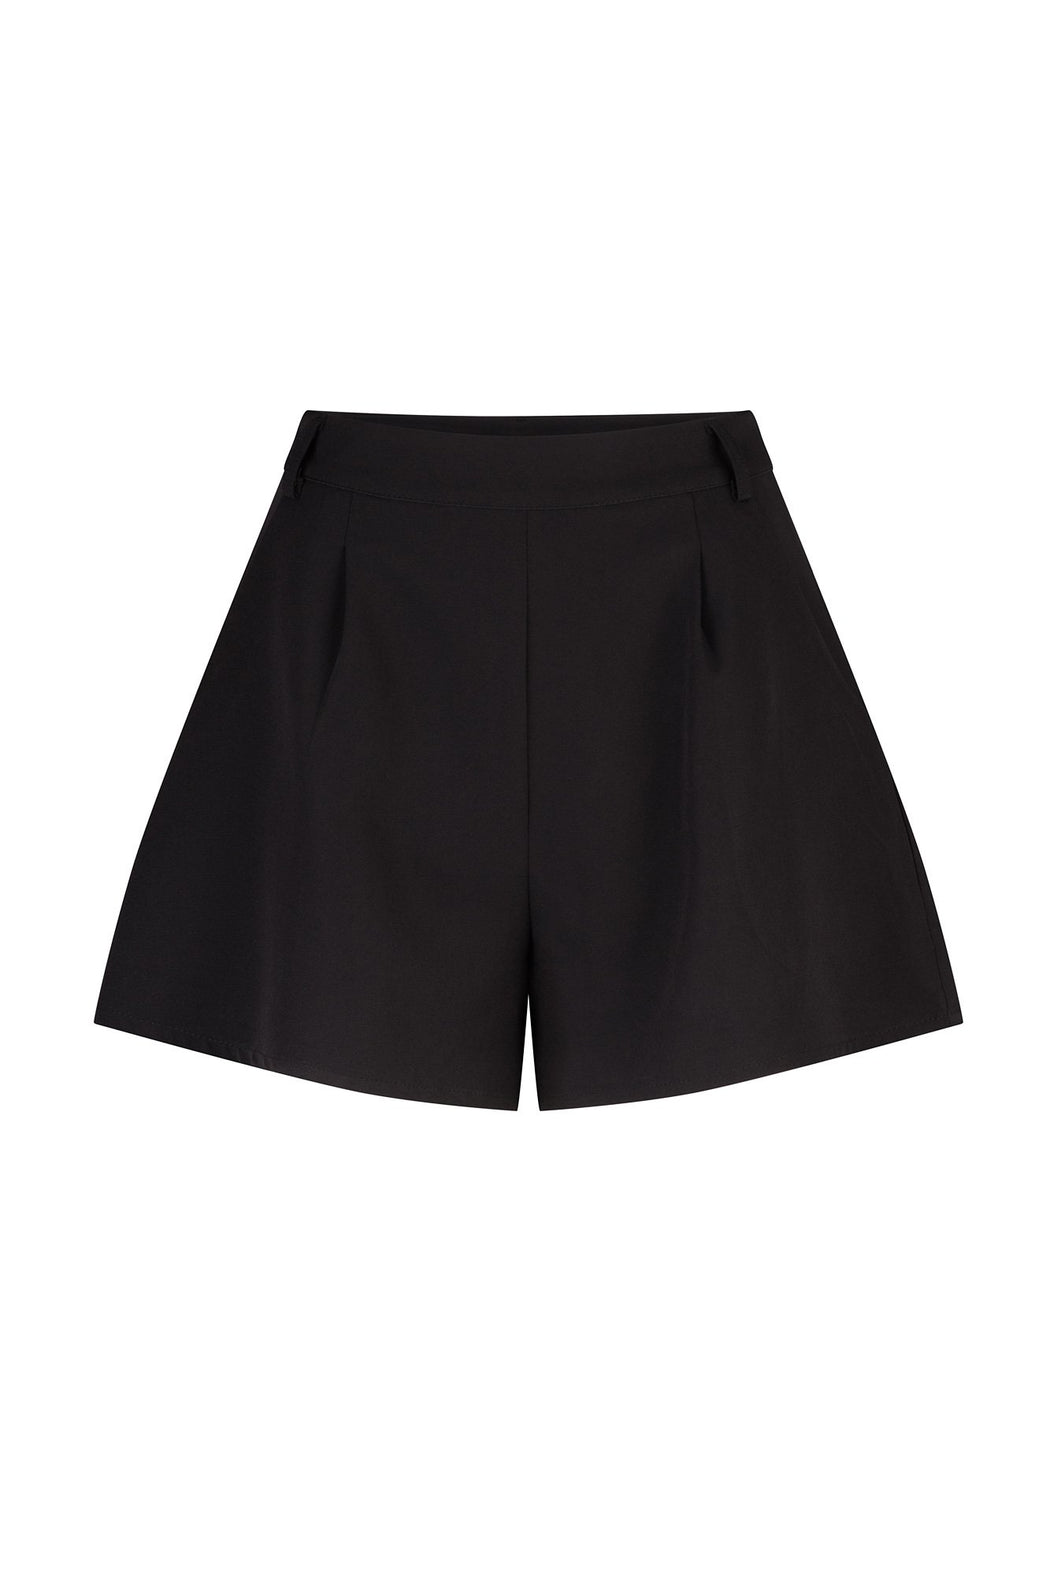 Addison Shorts - Black